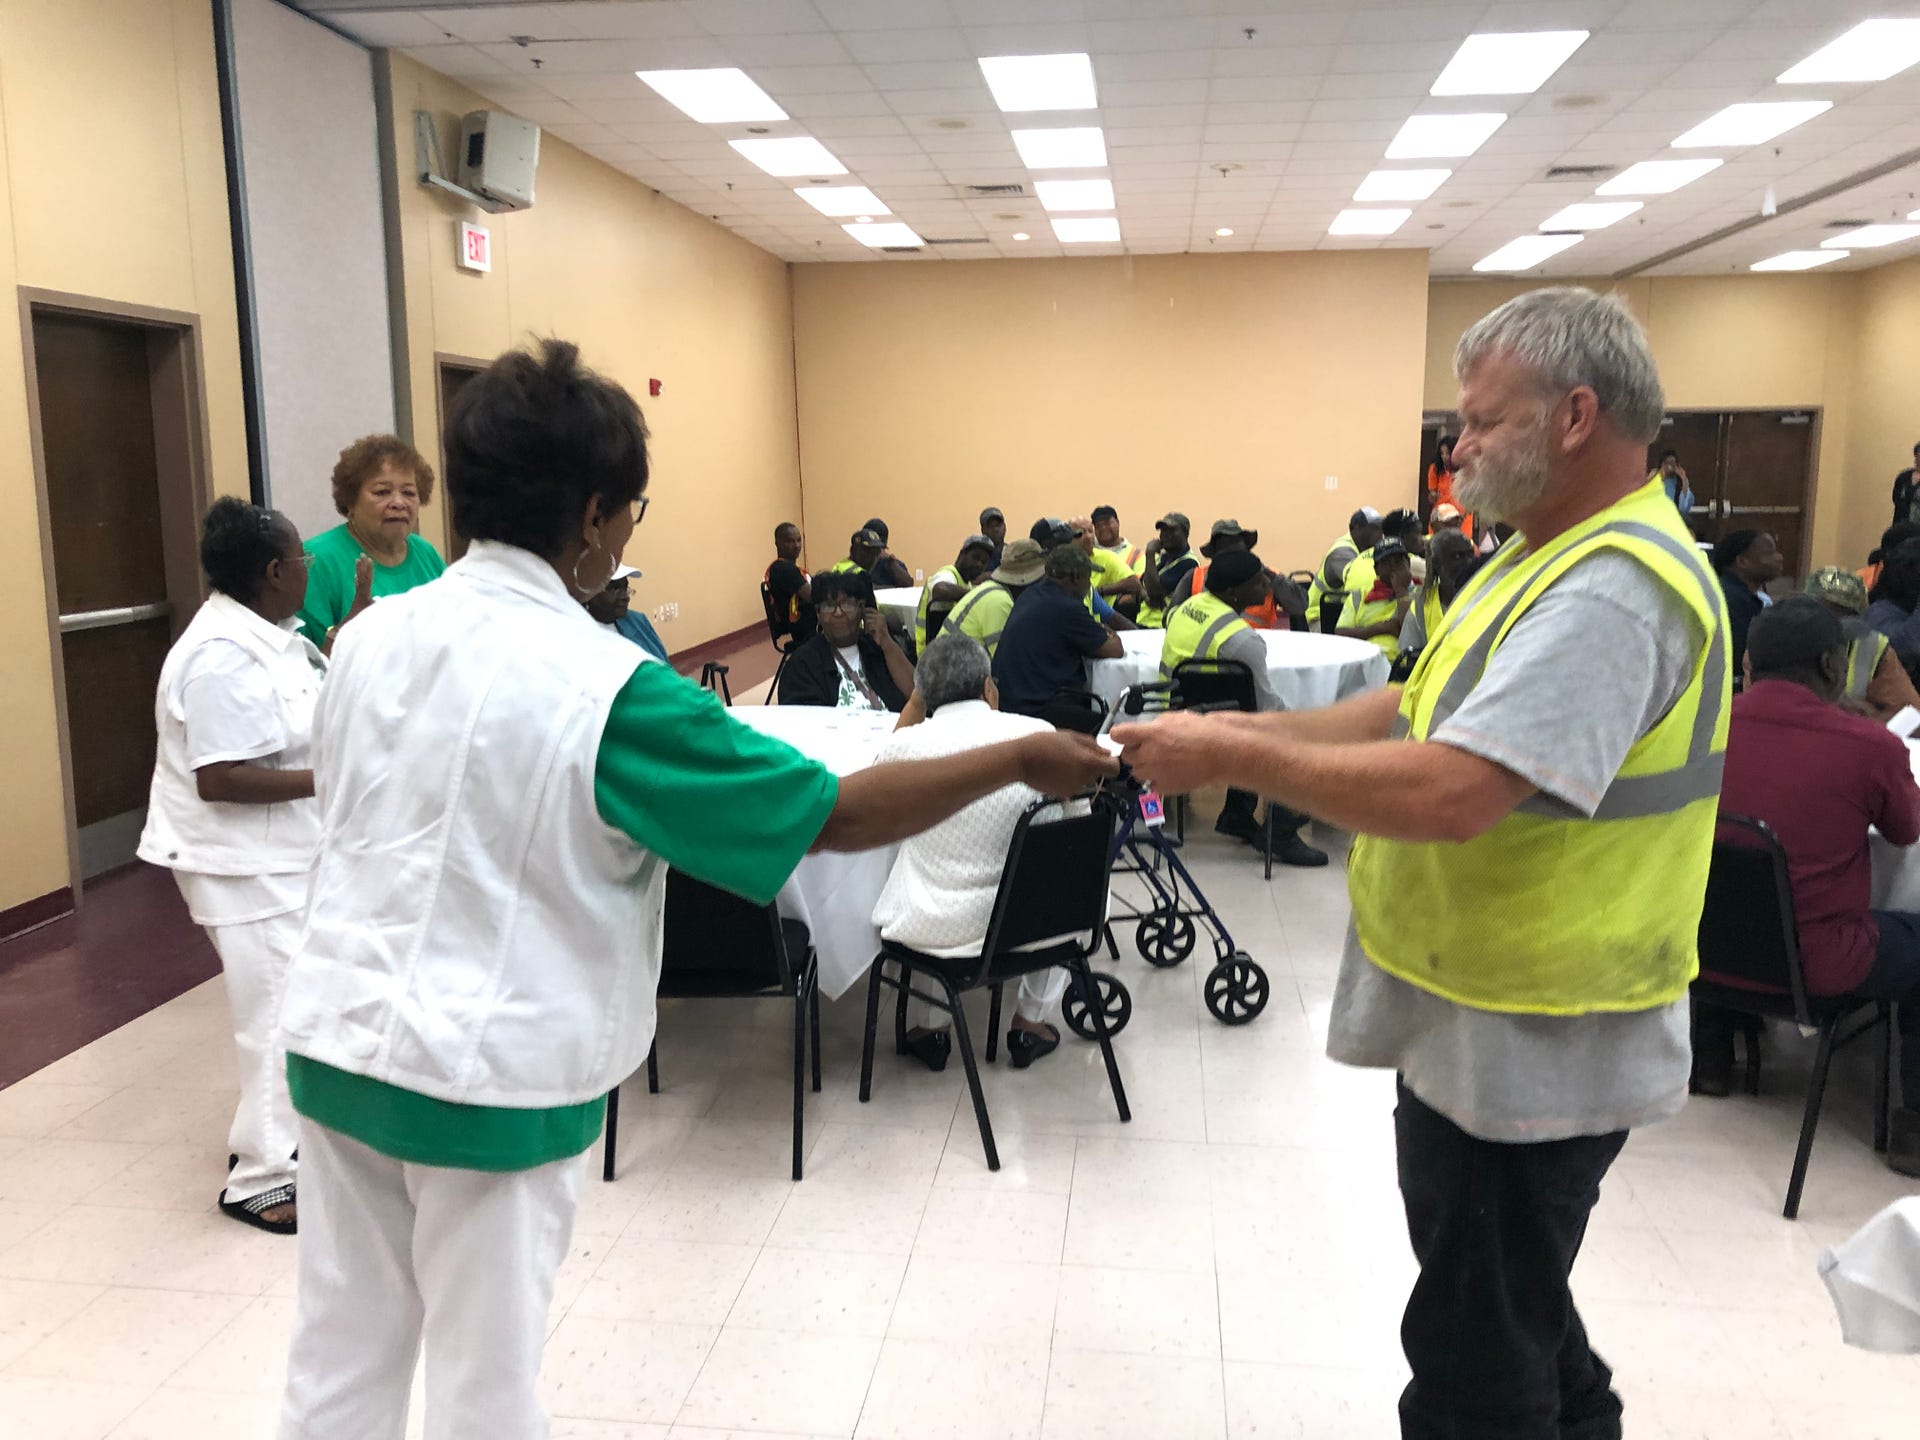 Monroe Sanitation Workers were awarded door prizes provided by local businesses at an event sponsored by the Samoan Civic & Social Club and Allen Green Williamson LLP for National Garbage Man Day. Awards were also distributed at the event.